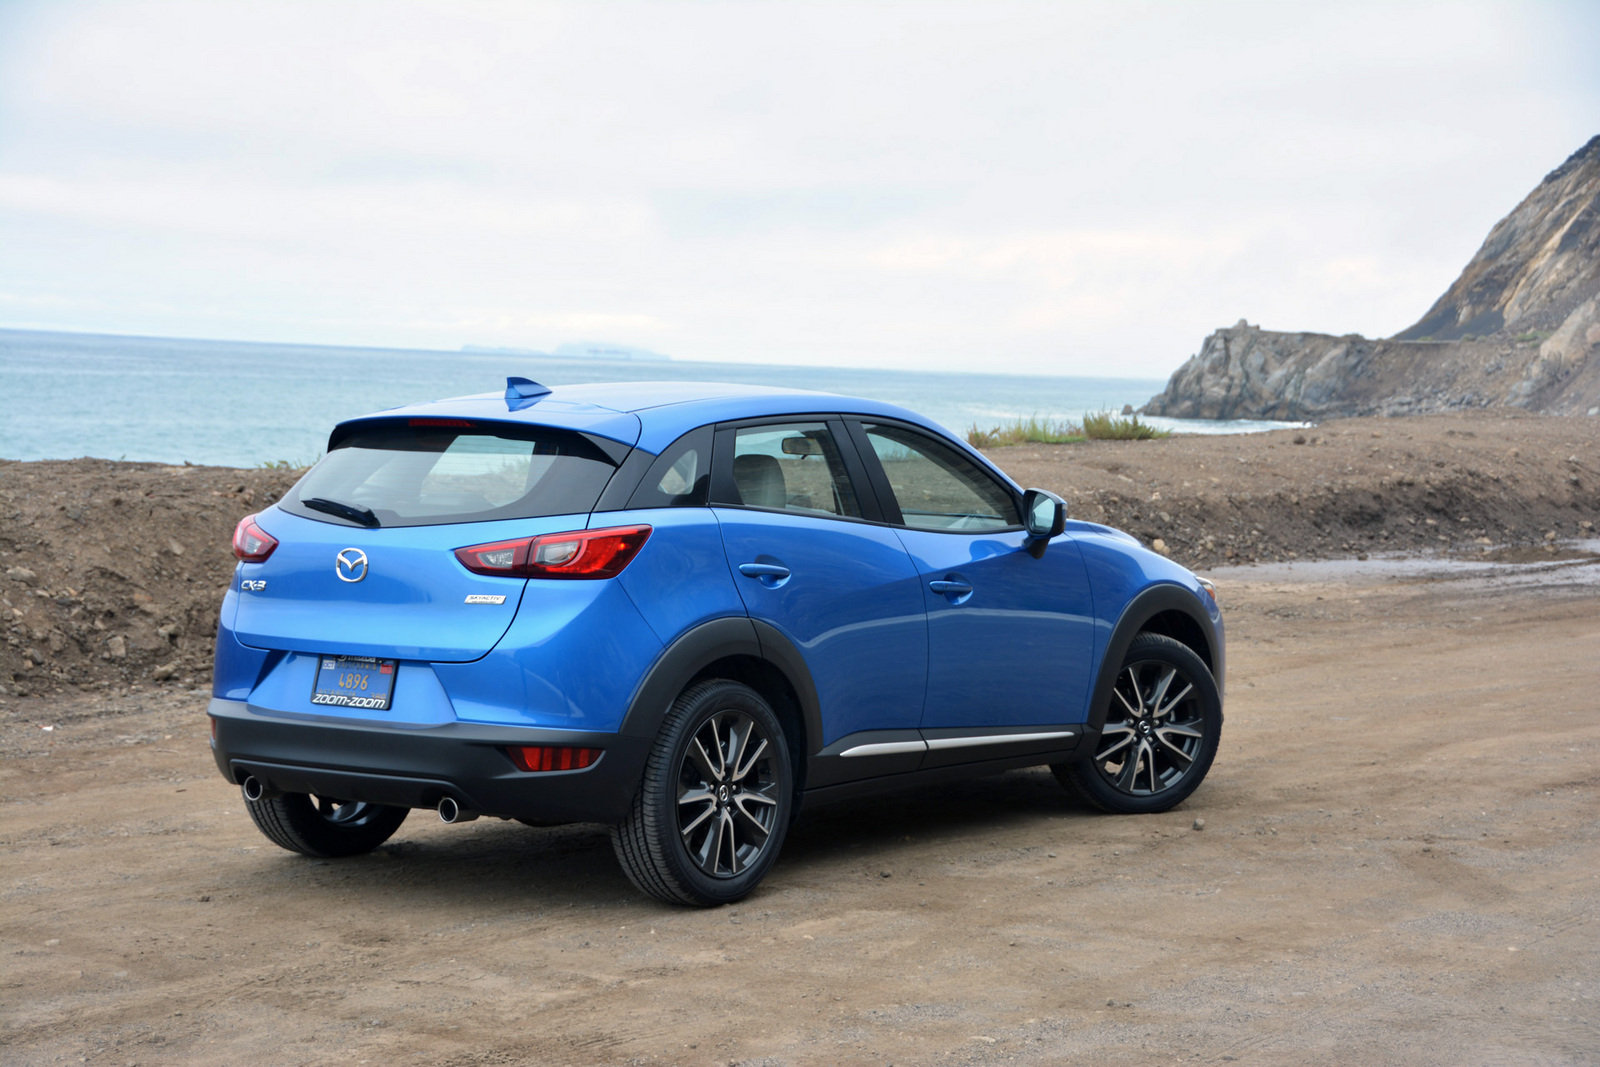 2016 mazda cx 3 driven review gallery top speed. Black Bedroom Furniture Sets. Home Design Ideas